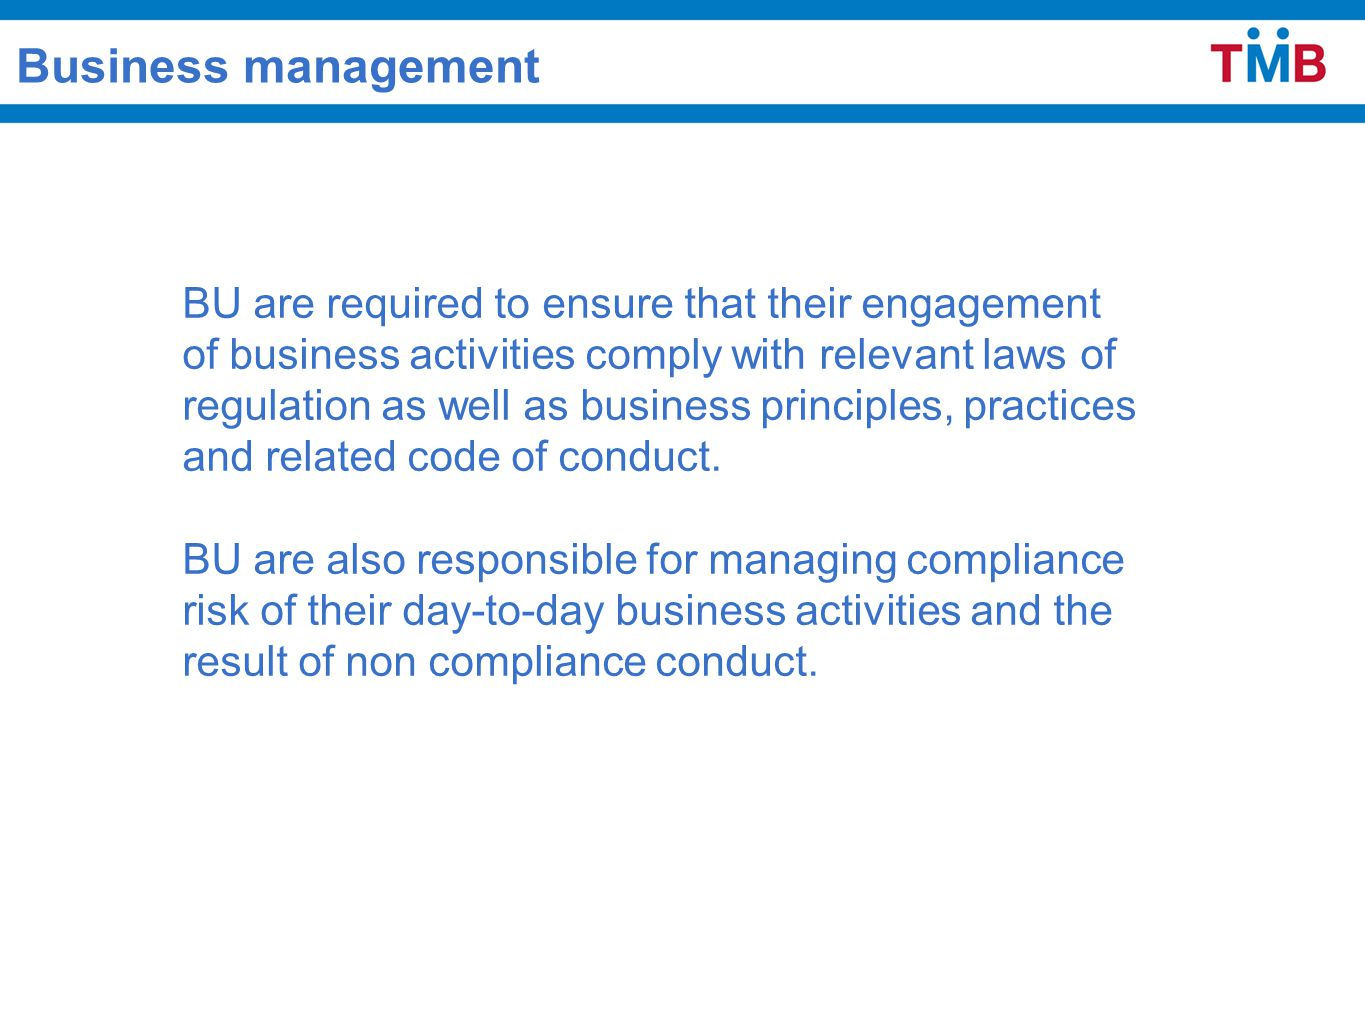 Assist management to identify compliance requirements and related risk via compliance checklist.